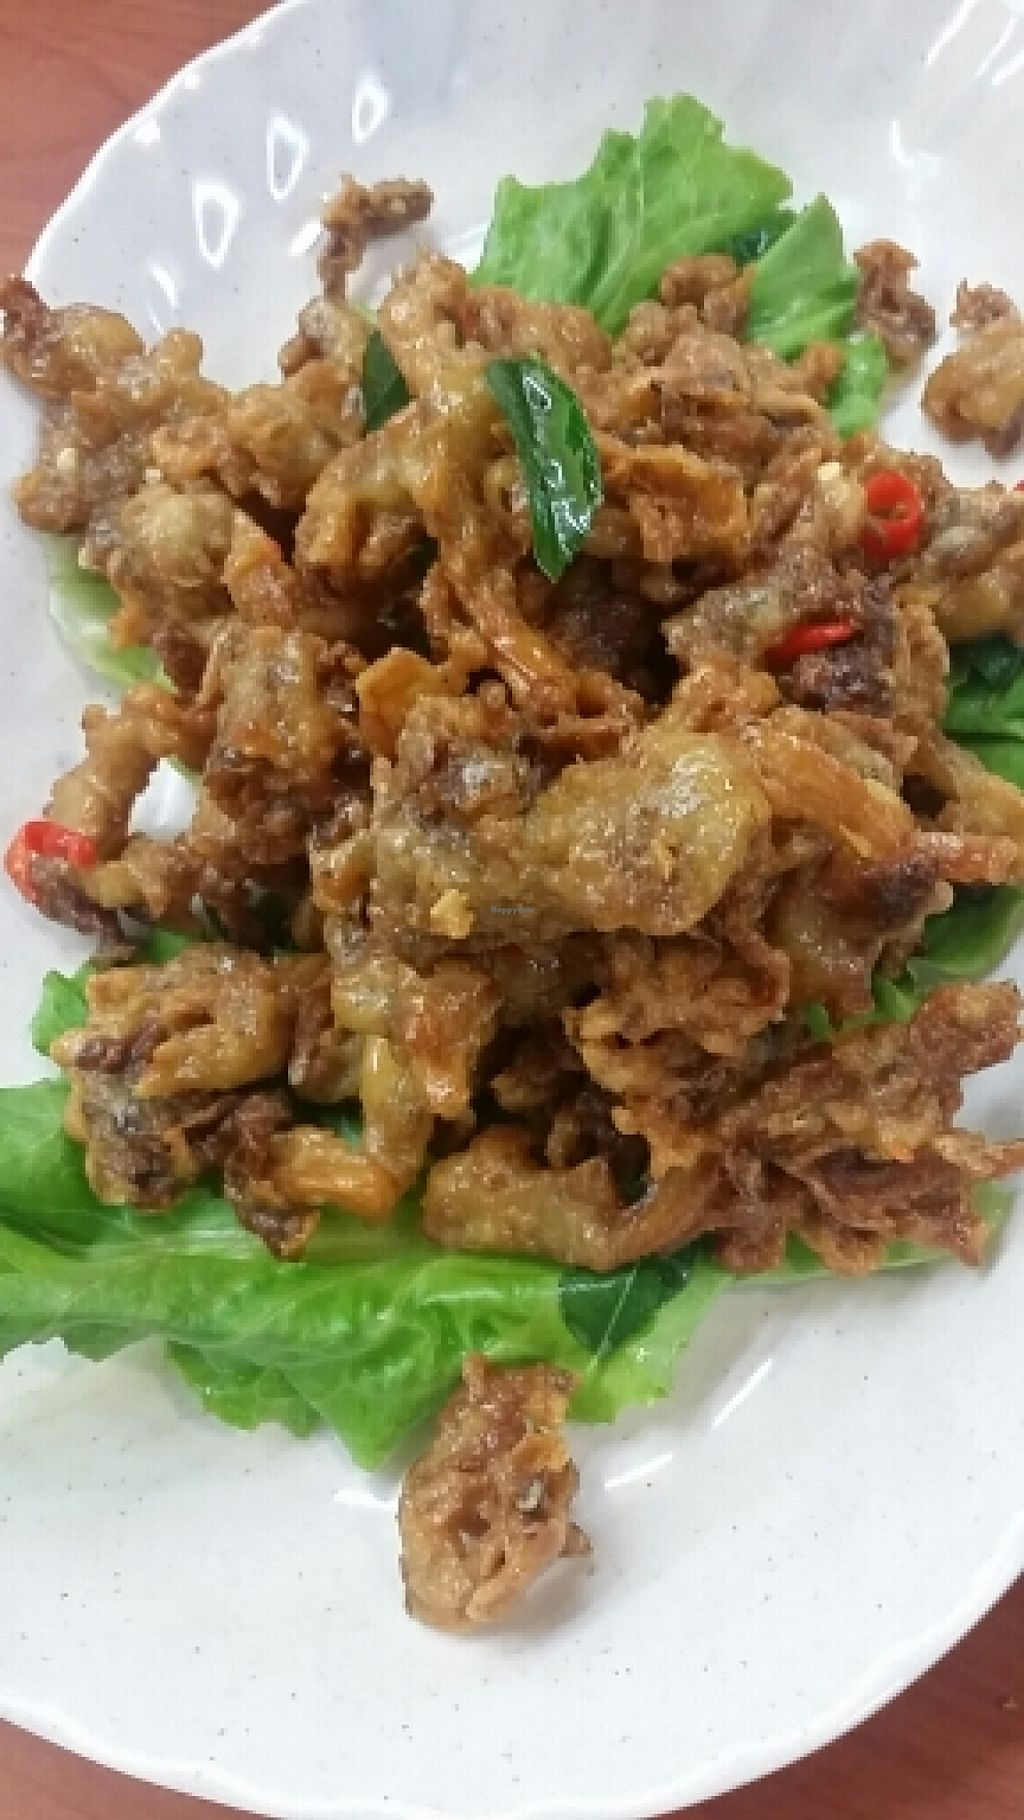 """Photo of Keat Lim Vegetarian  by <a href=""""/members/profile/BernardNg"""">BernardNg</a> <br/>Fried mushrooms. Must-try!! <br/> December 3, 2015  - <a href='/contact/abuse/image/54278/127001'>Report</a>"""